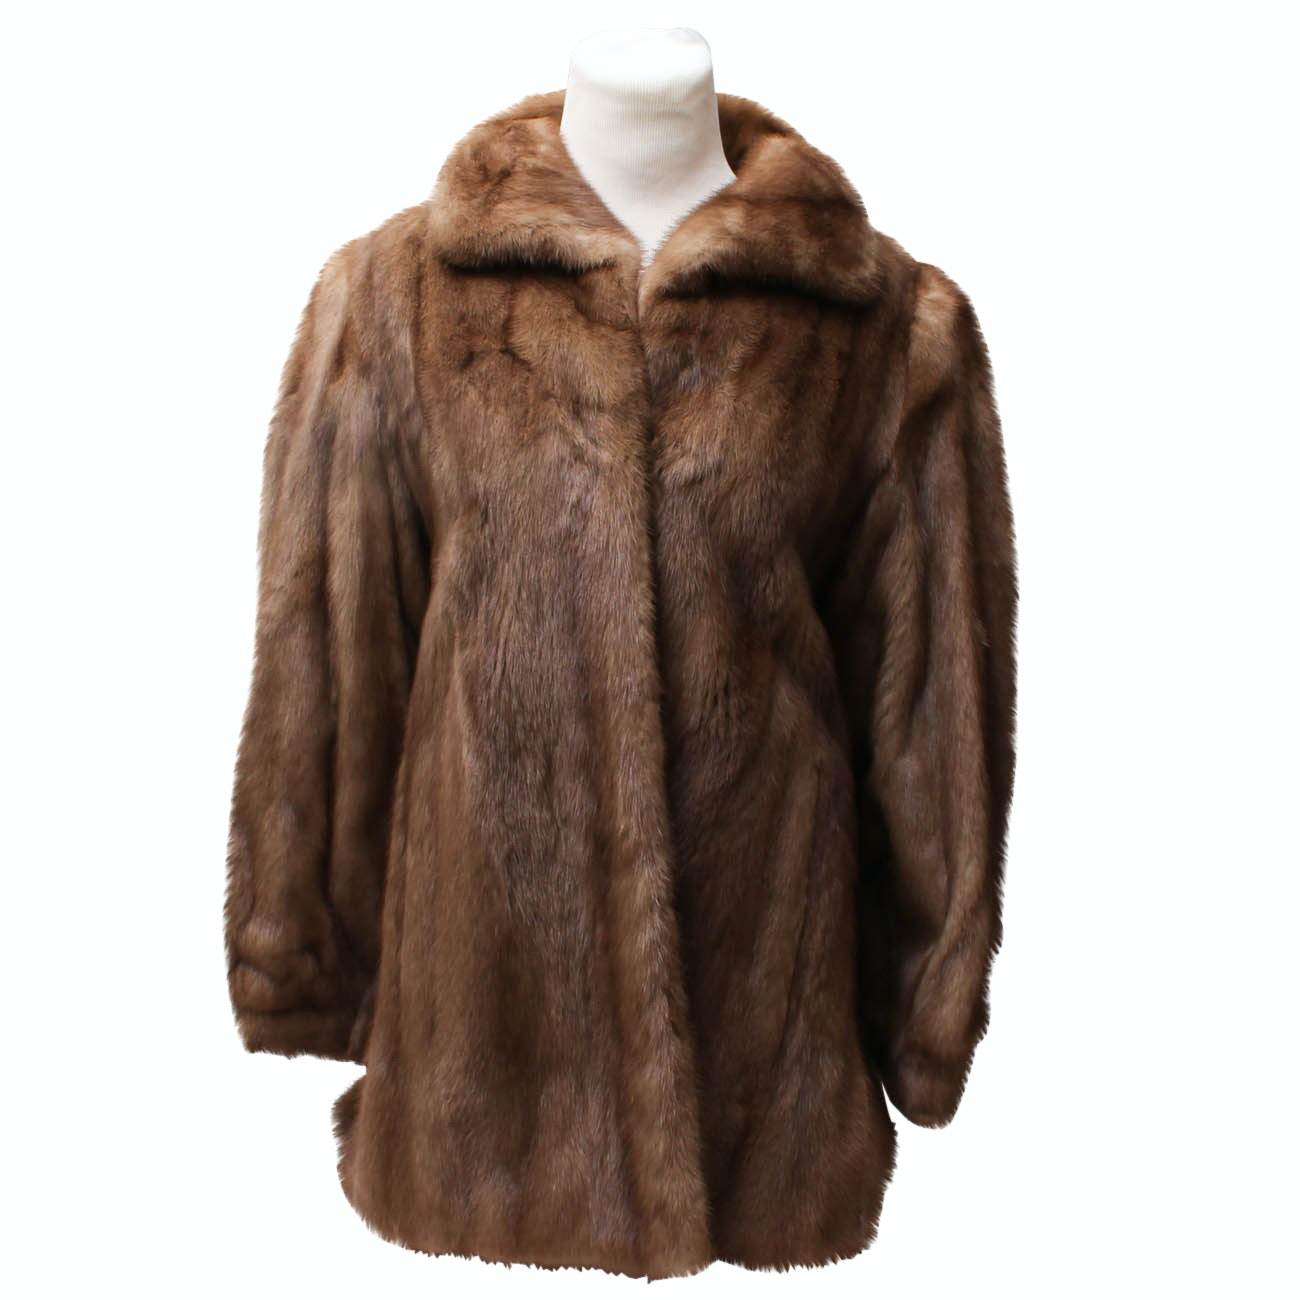 Hopper Furs Coat